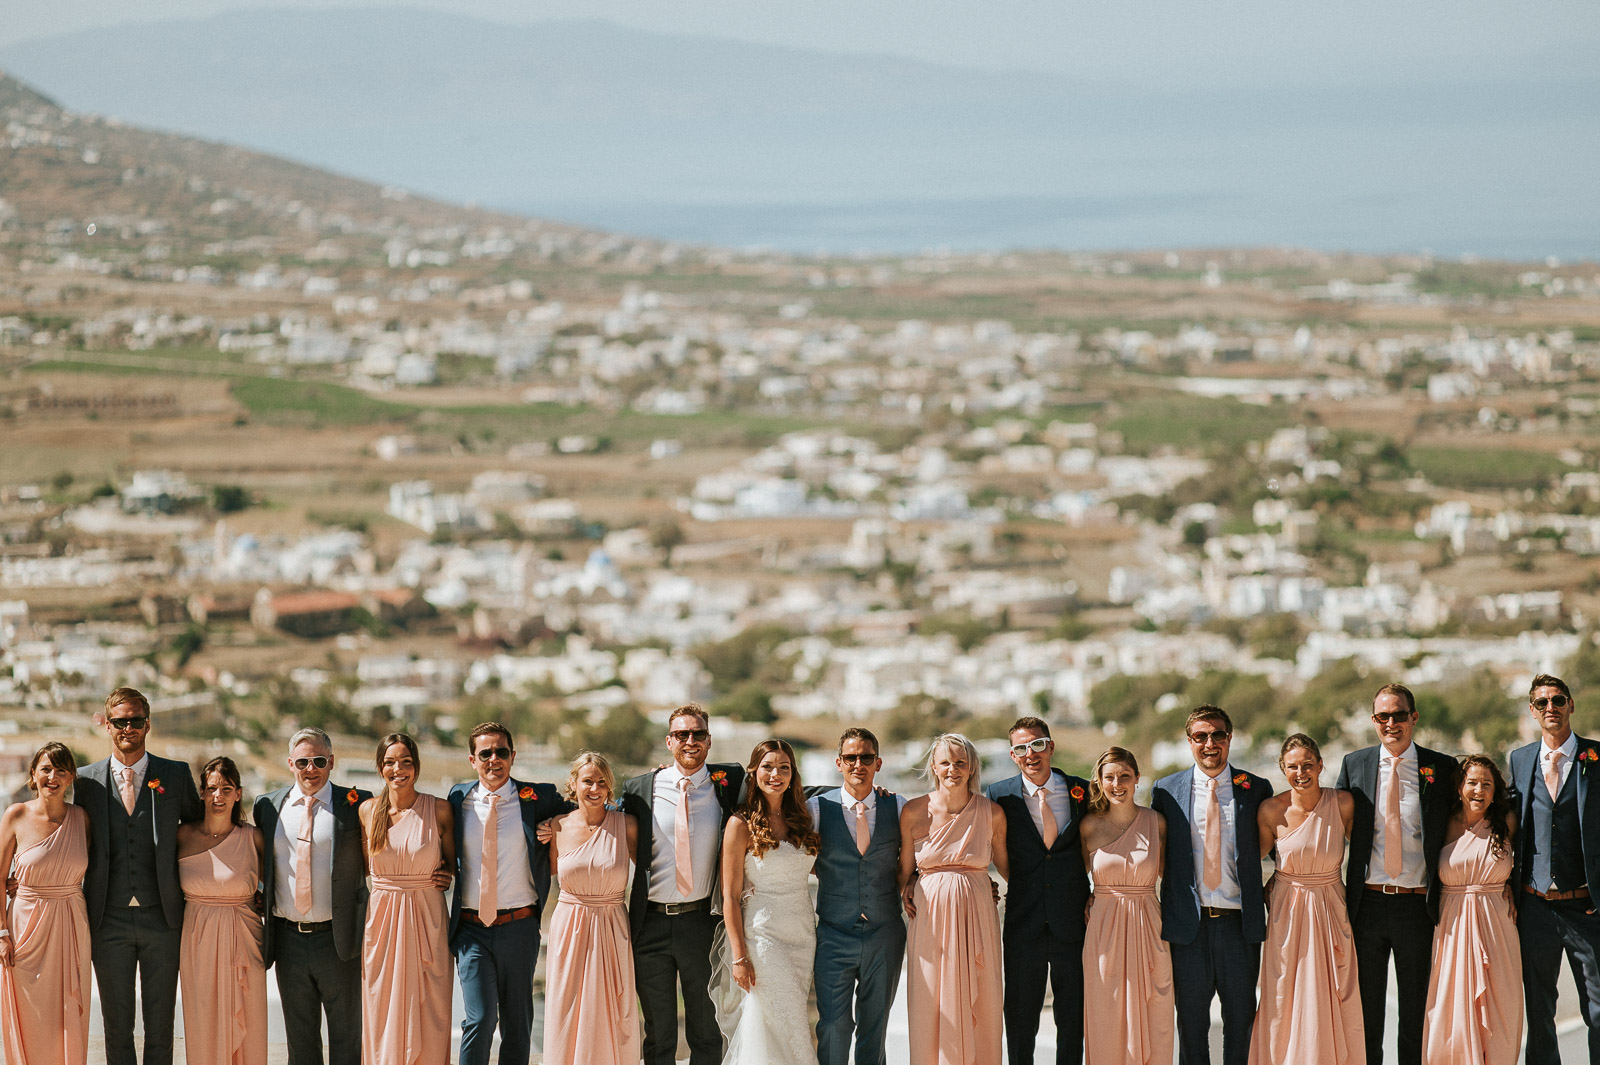 Santorini-Wedding-Photographer-Greece-Destination-Weddings-Mait-Juriado-M&J-Studios-042